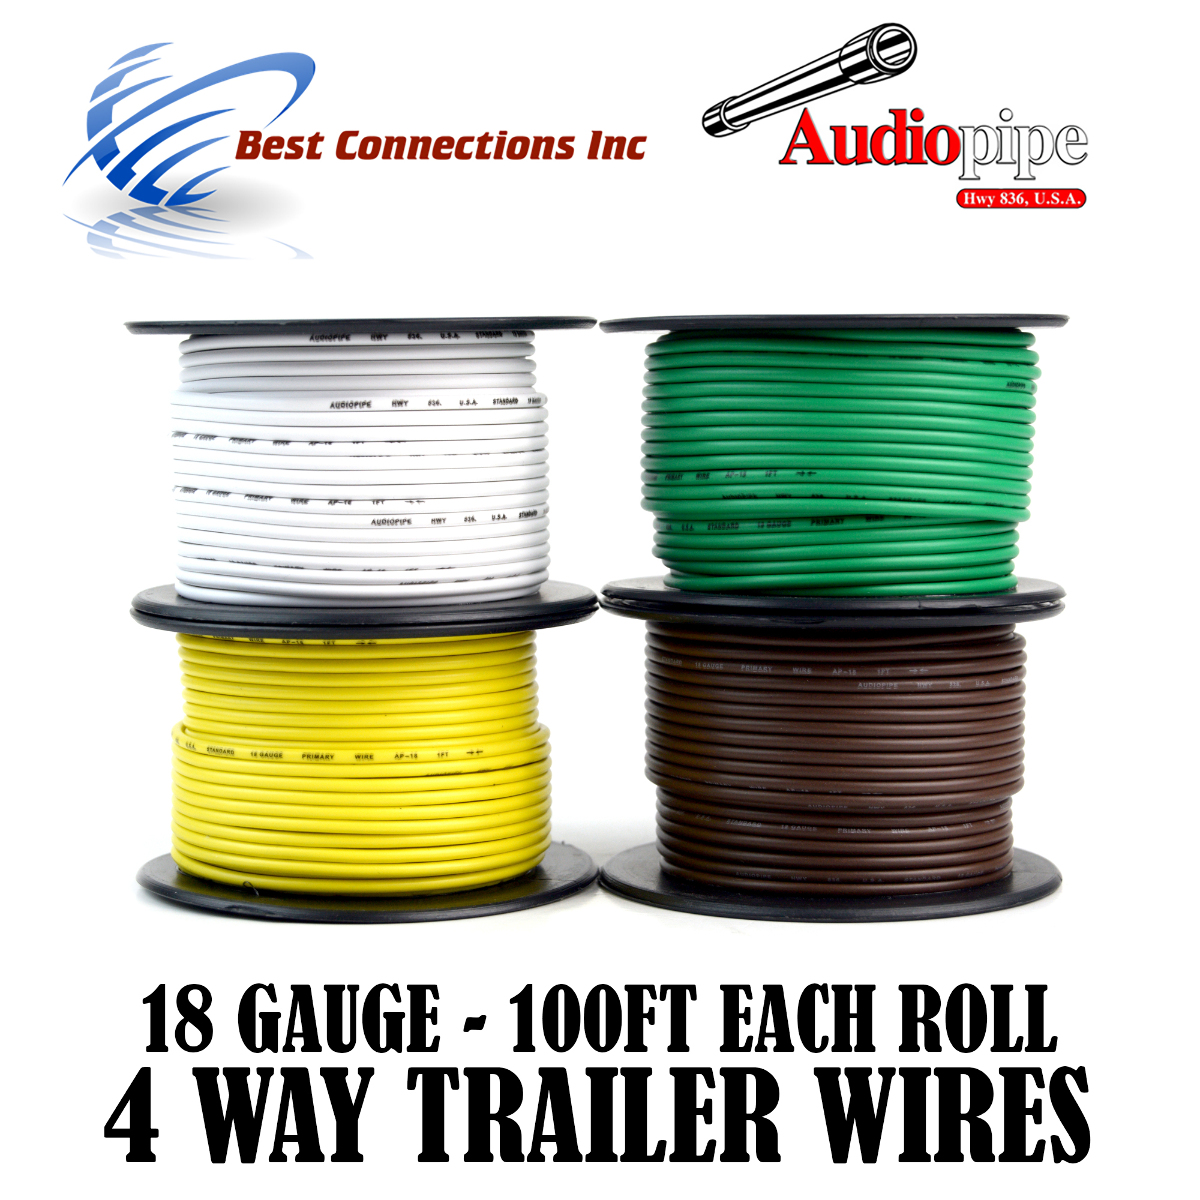 4 Way Trailer Wire Light Cable for Harness LED 100ft Each Roll 18 Gauge 4 Rolls